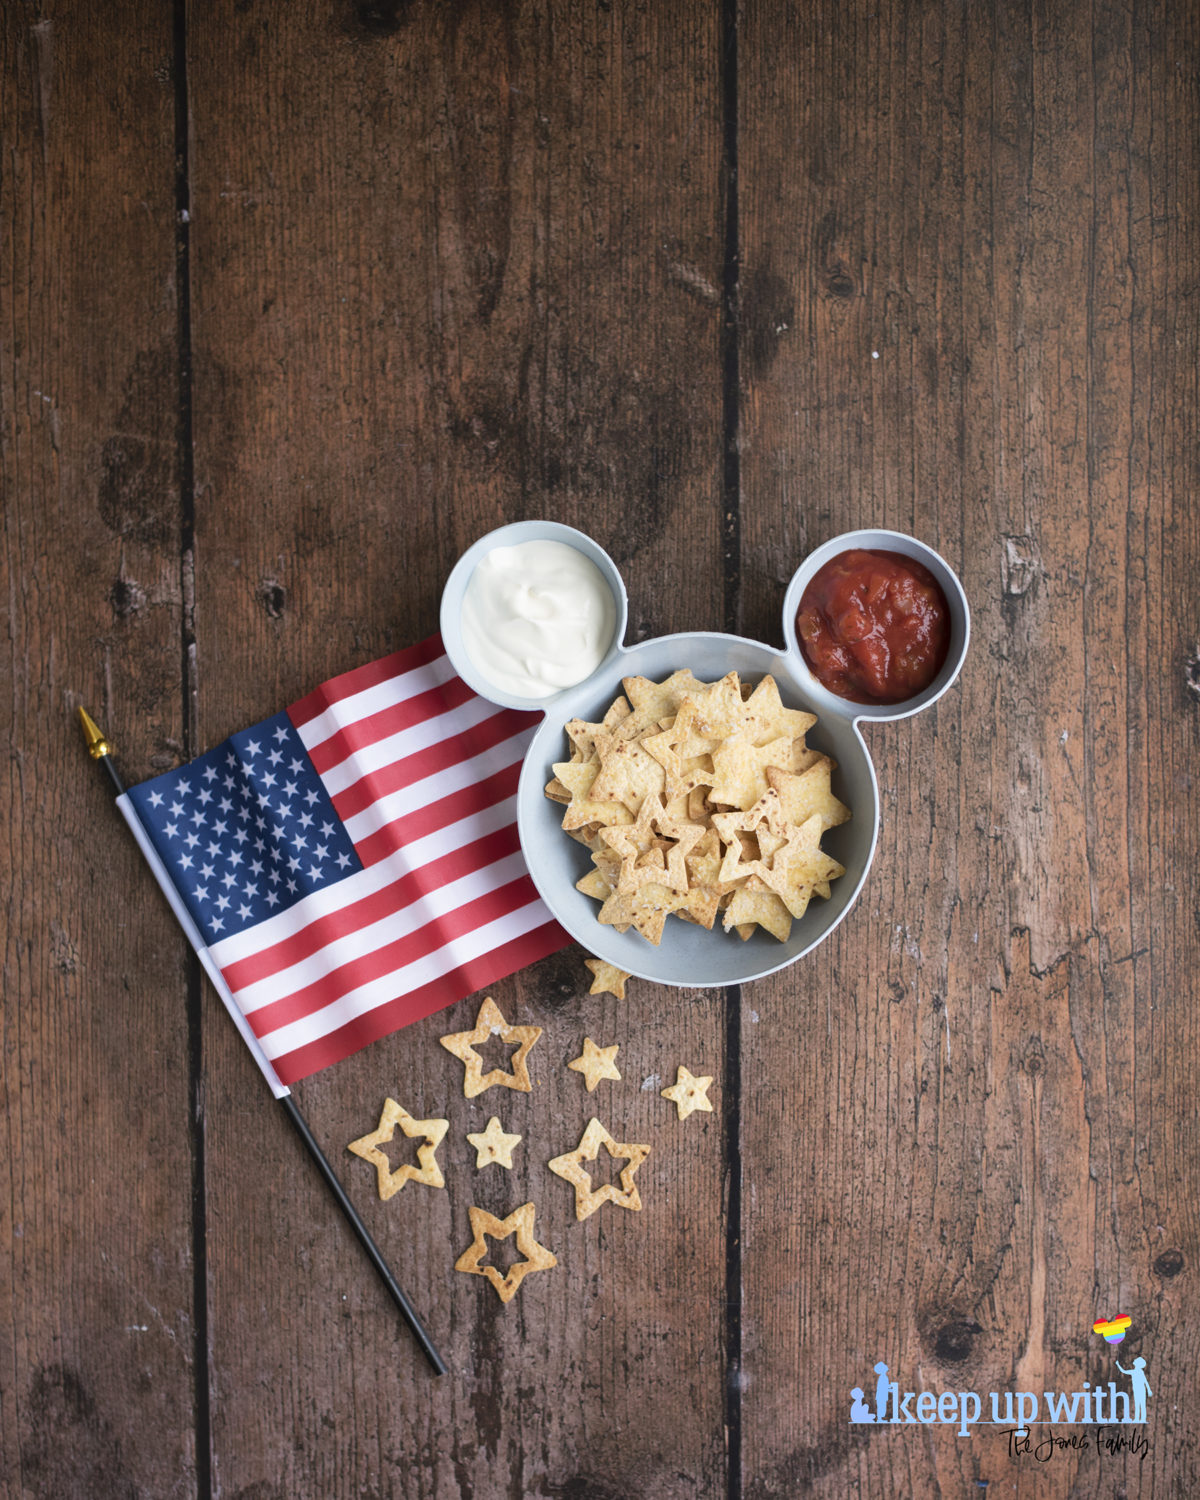 Image shows a blue bowl in the shape of Mickey Mouse suitable for chips 'n' dip. There is an American flag laid close to the bowl on the dark wooden table.  Inside the bowl is tomato salsa, soured cream, and star spangled nacho chips. Image by keep up with the jones family.